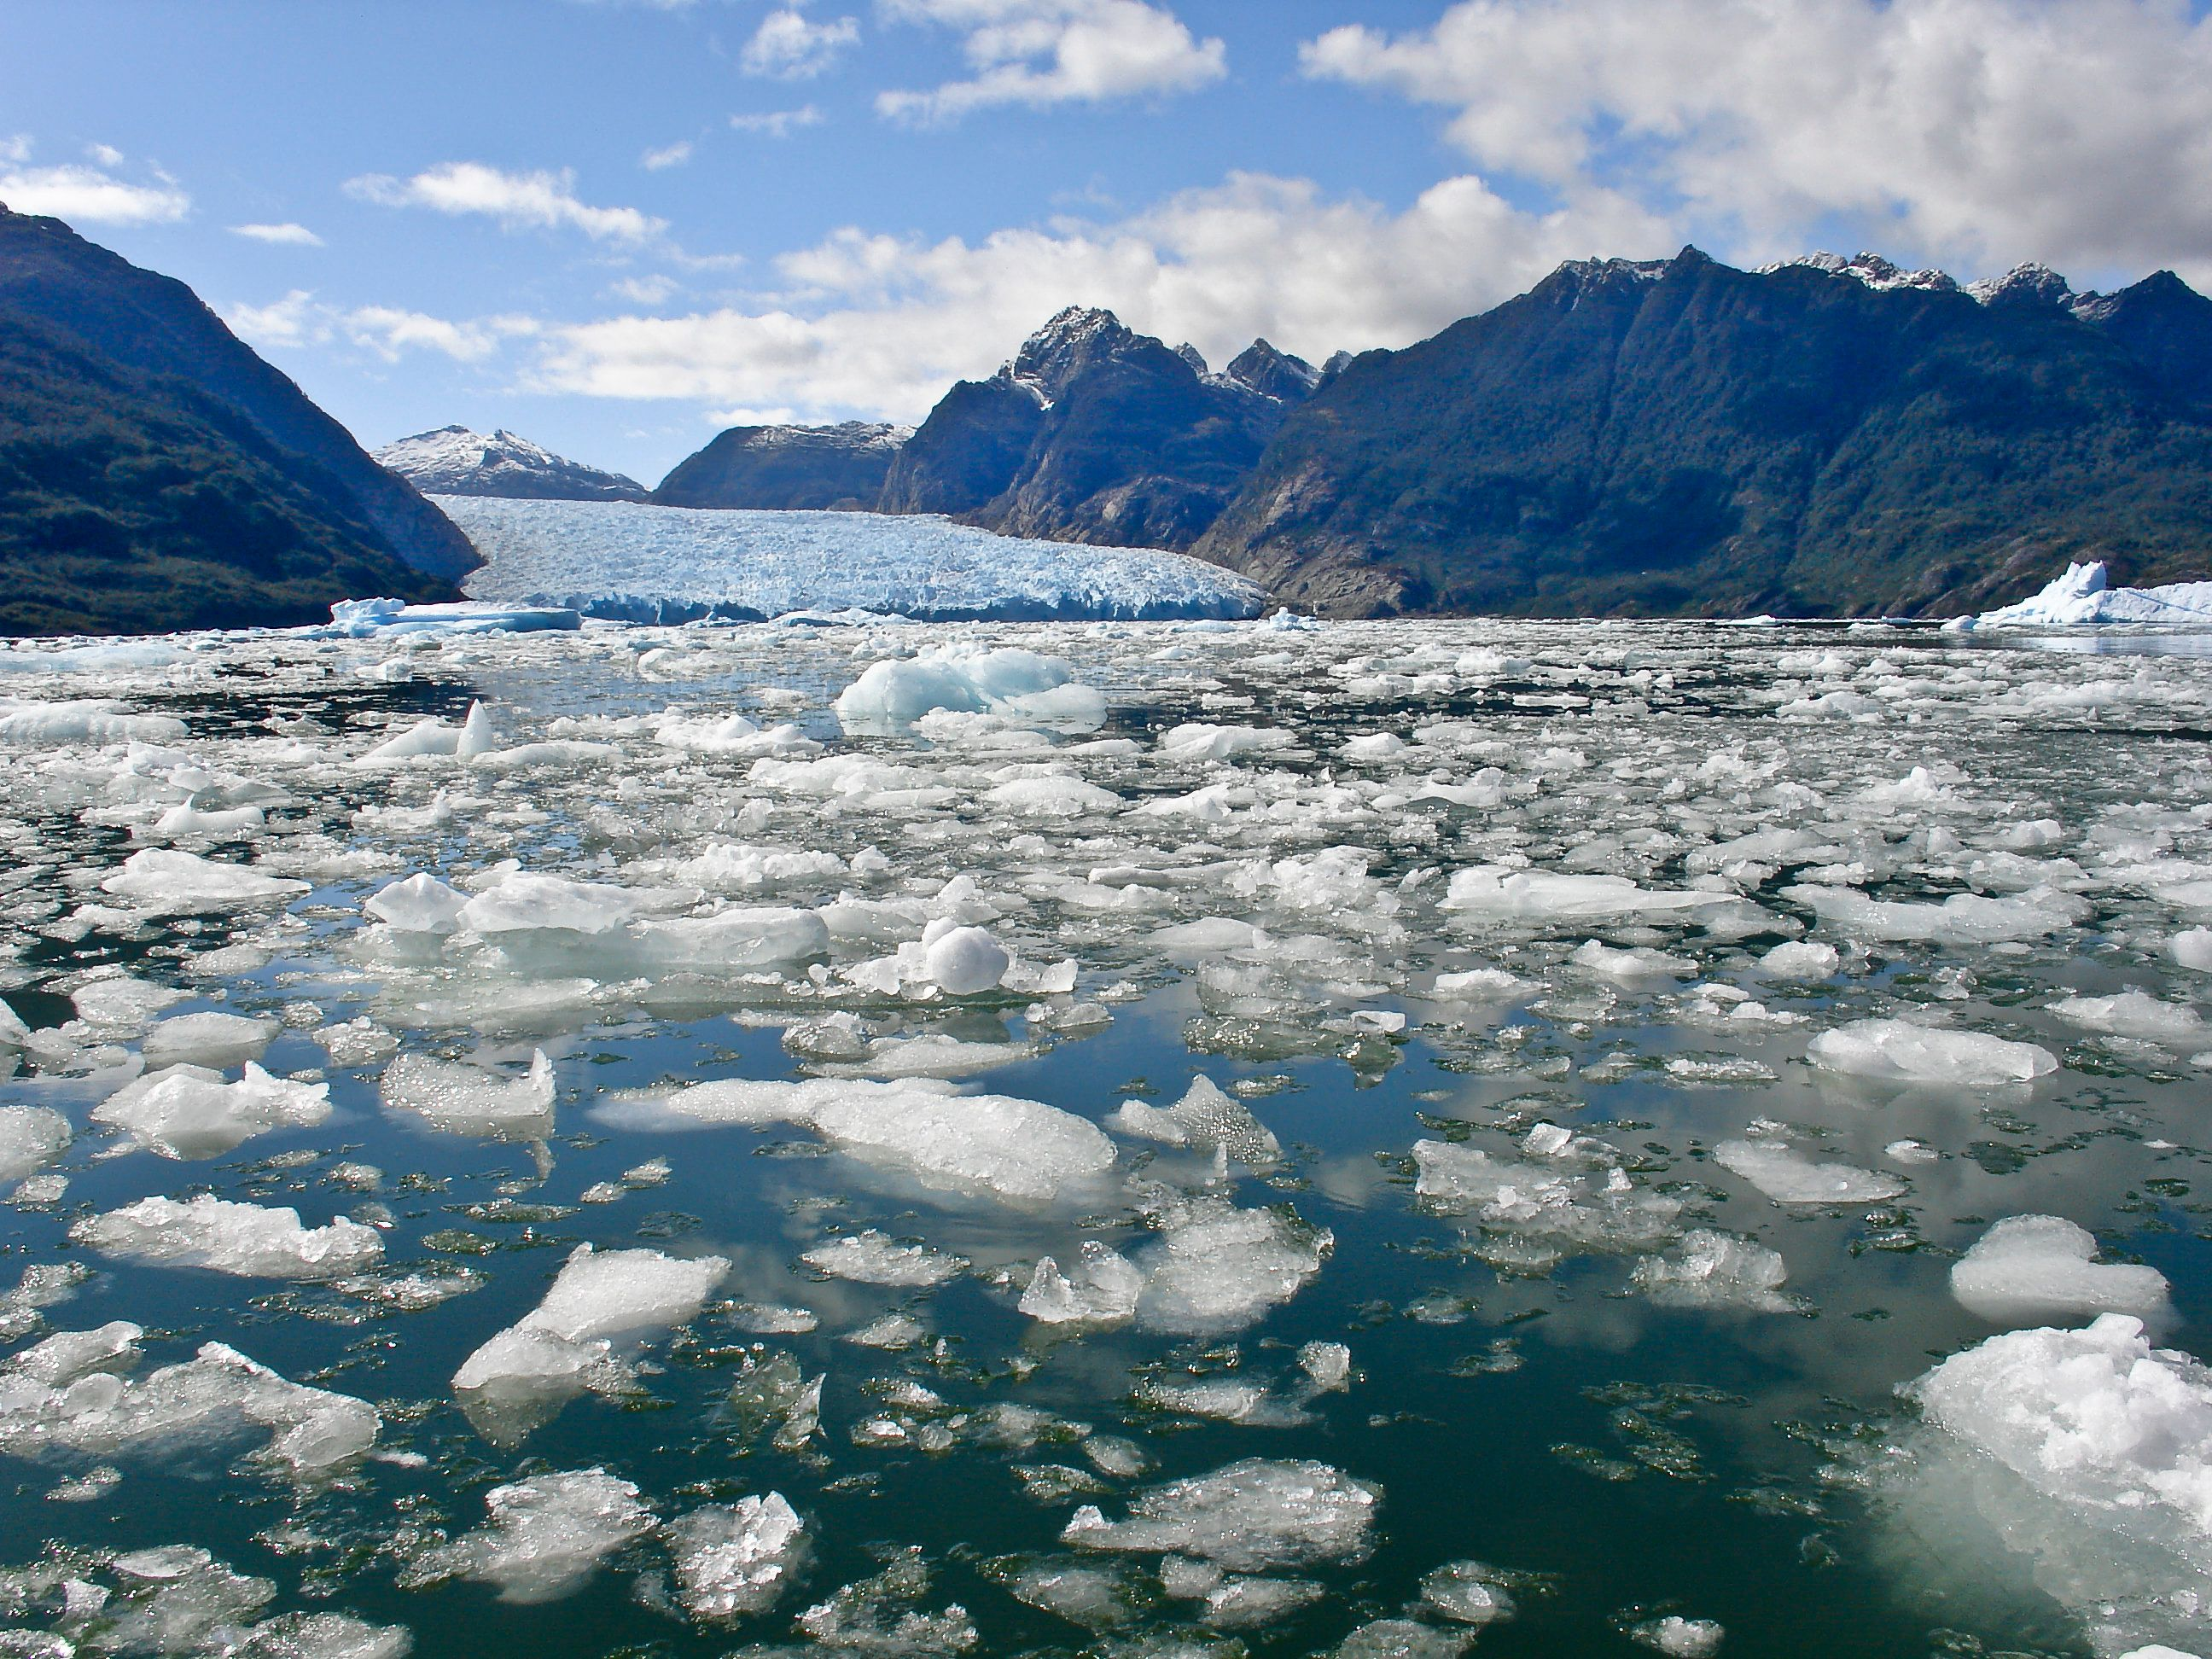 North Pole Reaches 'Remarkable' Annual Temperatures As Sea Ice Fails To